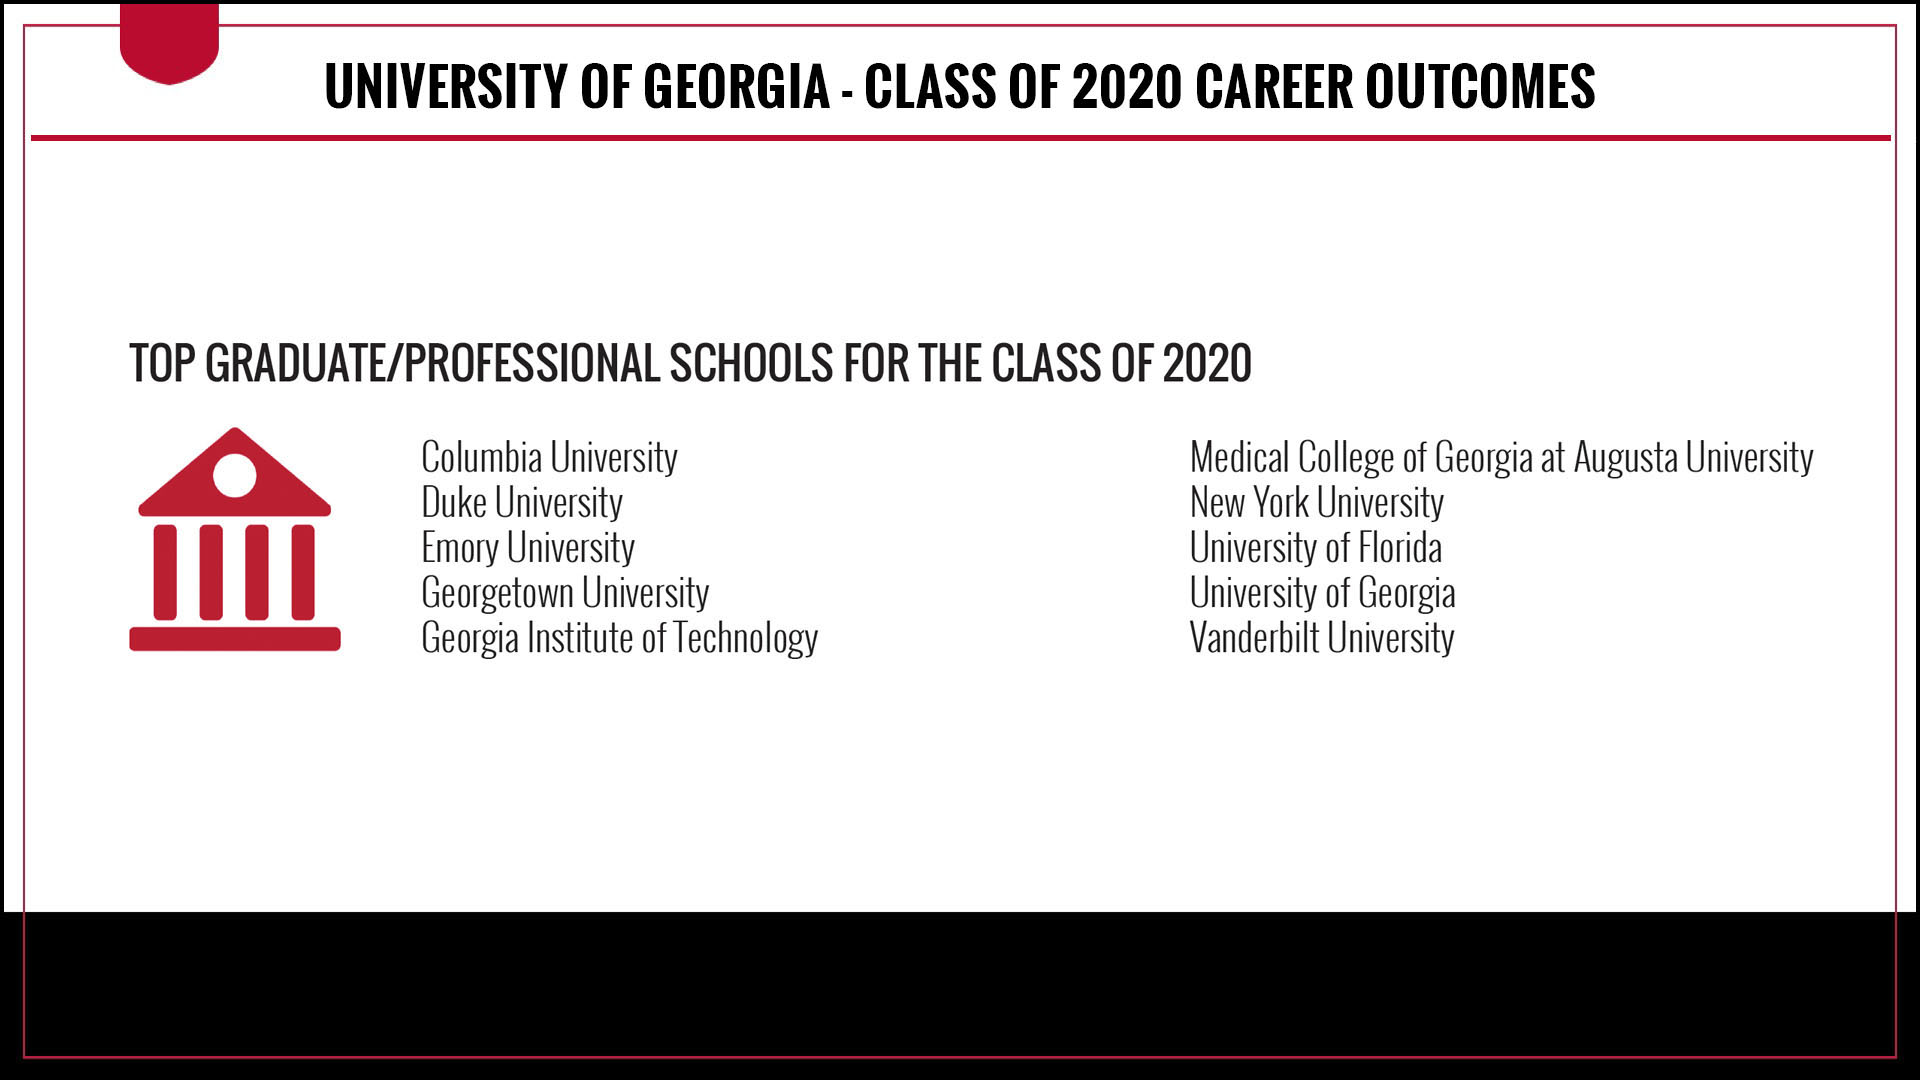 Top graduate and professional schools for the Class of 2020 include Columbia University, Duke University, Emory University, Georgetown University, Georgia Institute of Technology, Medical College of Georgia at Augusta University, New York University, University of Florida, University of Georgia, and Vanderbilt University